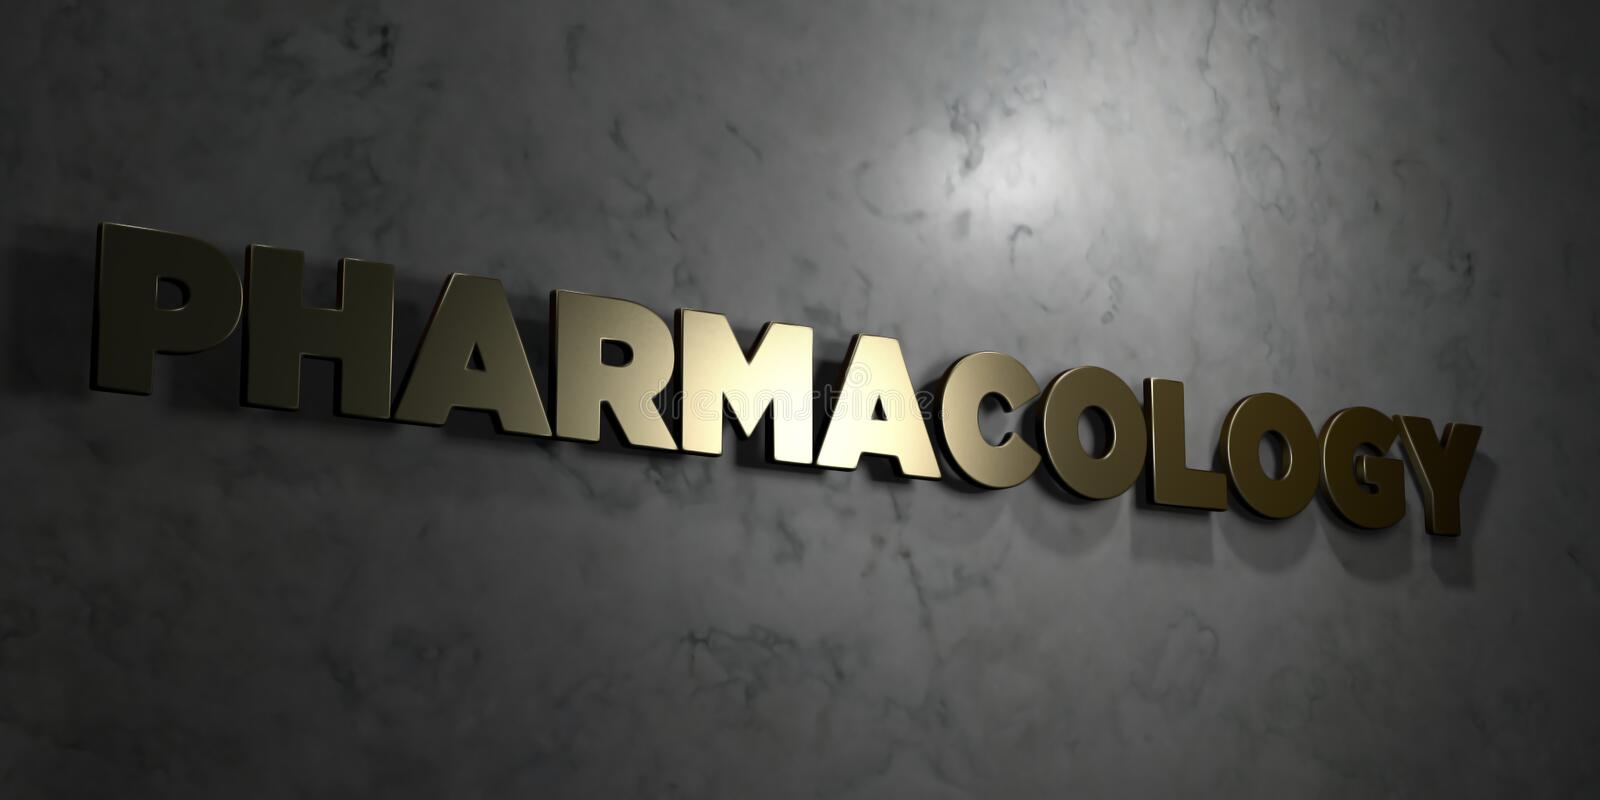 Pharmacology - Gold text on black background - 3D rendered royalty free stock picture. This image can be used for an online website banner ad or a print royalty free illustration